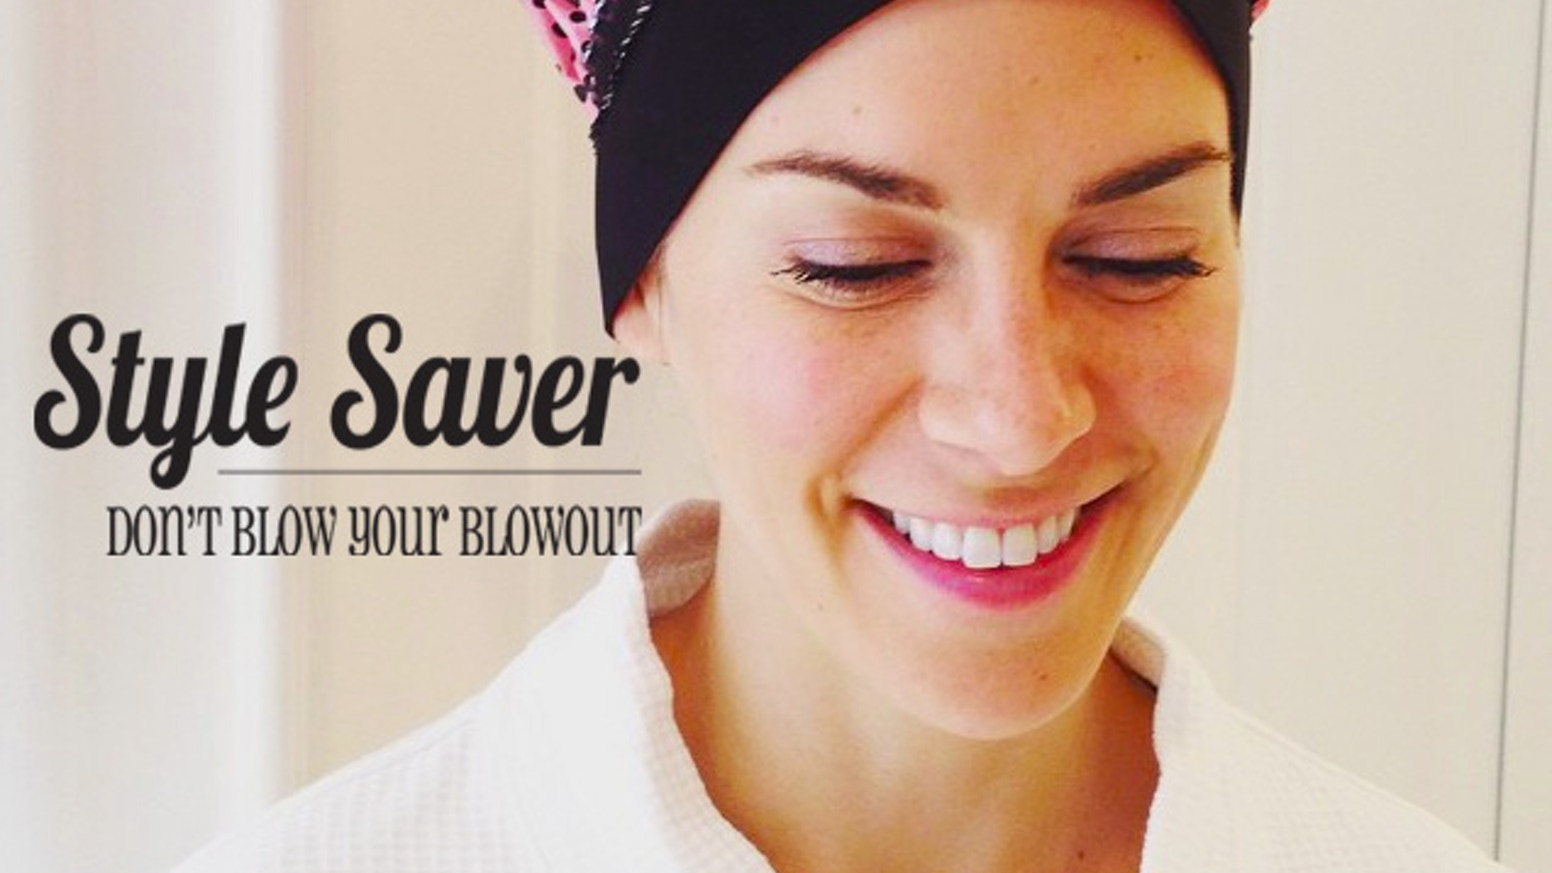 Never blow a blowout again with Style Saver. Our neoprene-trimmed PEVA cap protects your hairline from water & preserves your blowout!